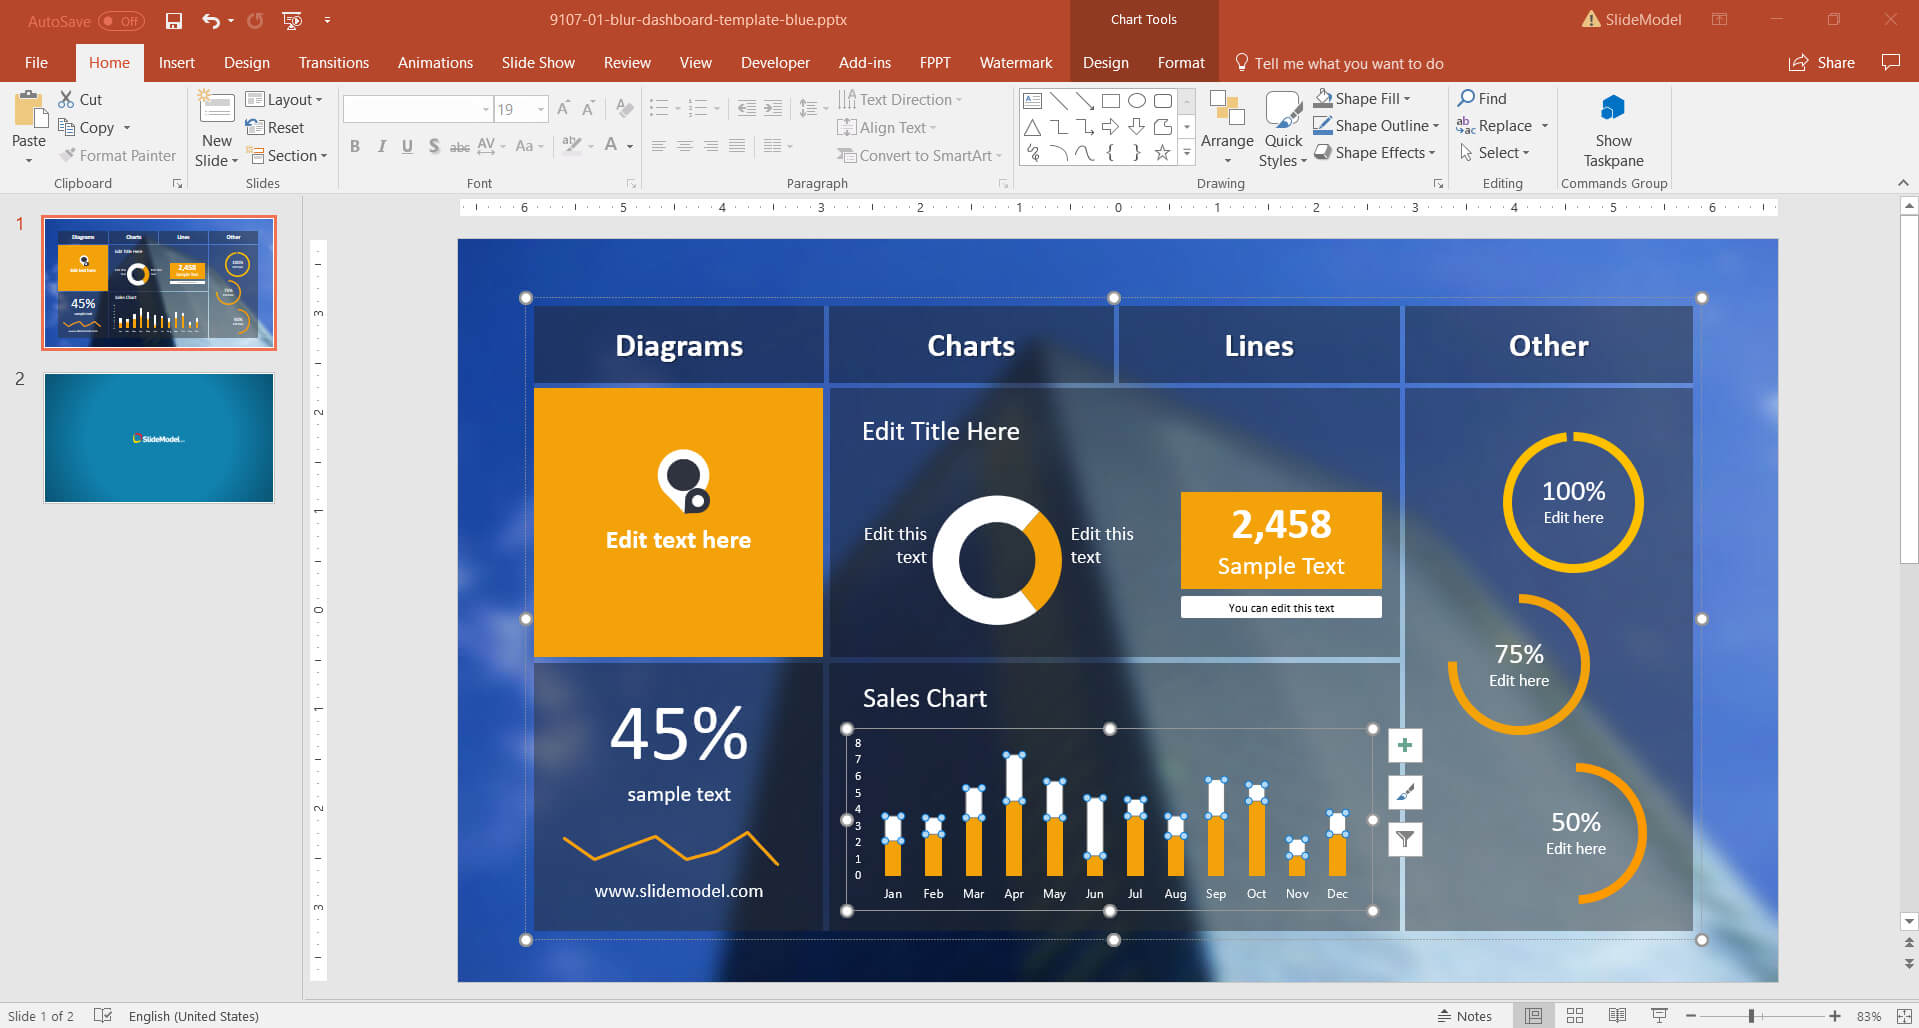 10 Best Dashboard Templates For Powerpoint Presentations New intended for Project Dashboard Template Powerpoint Free